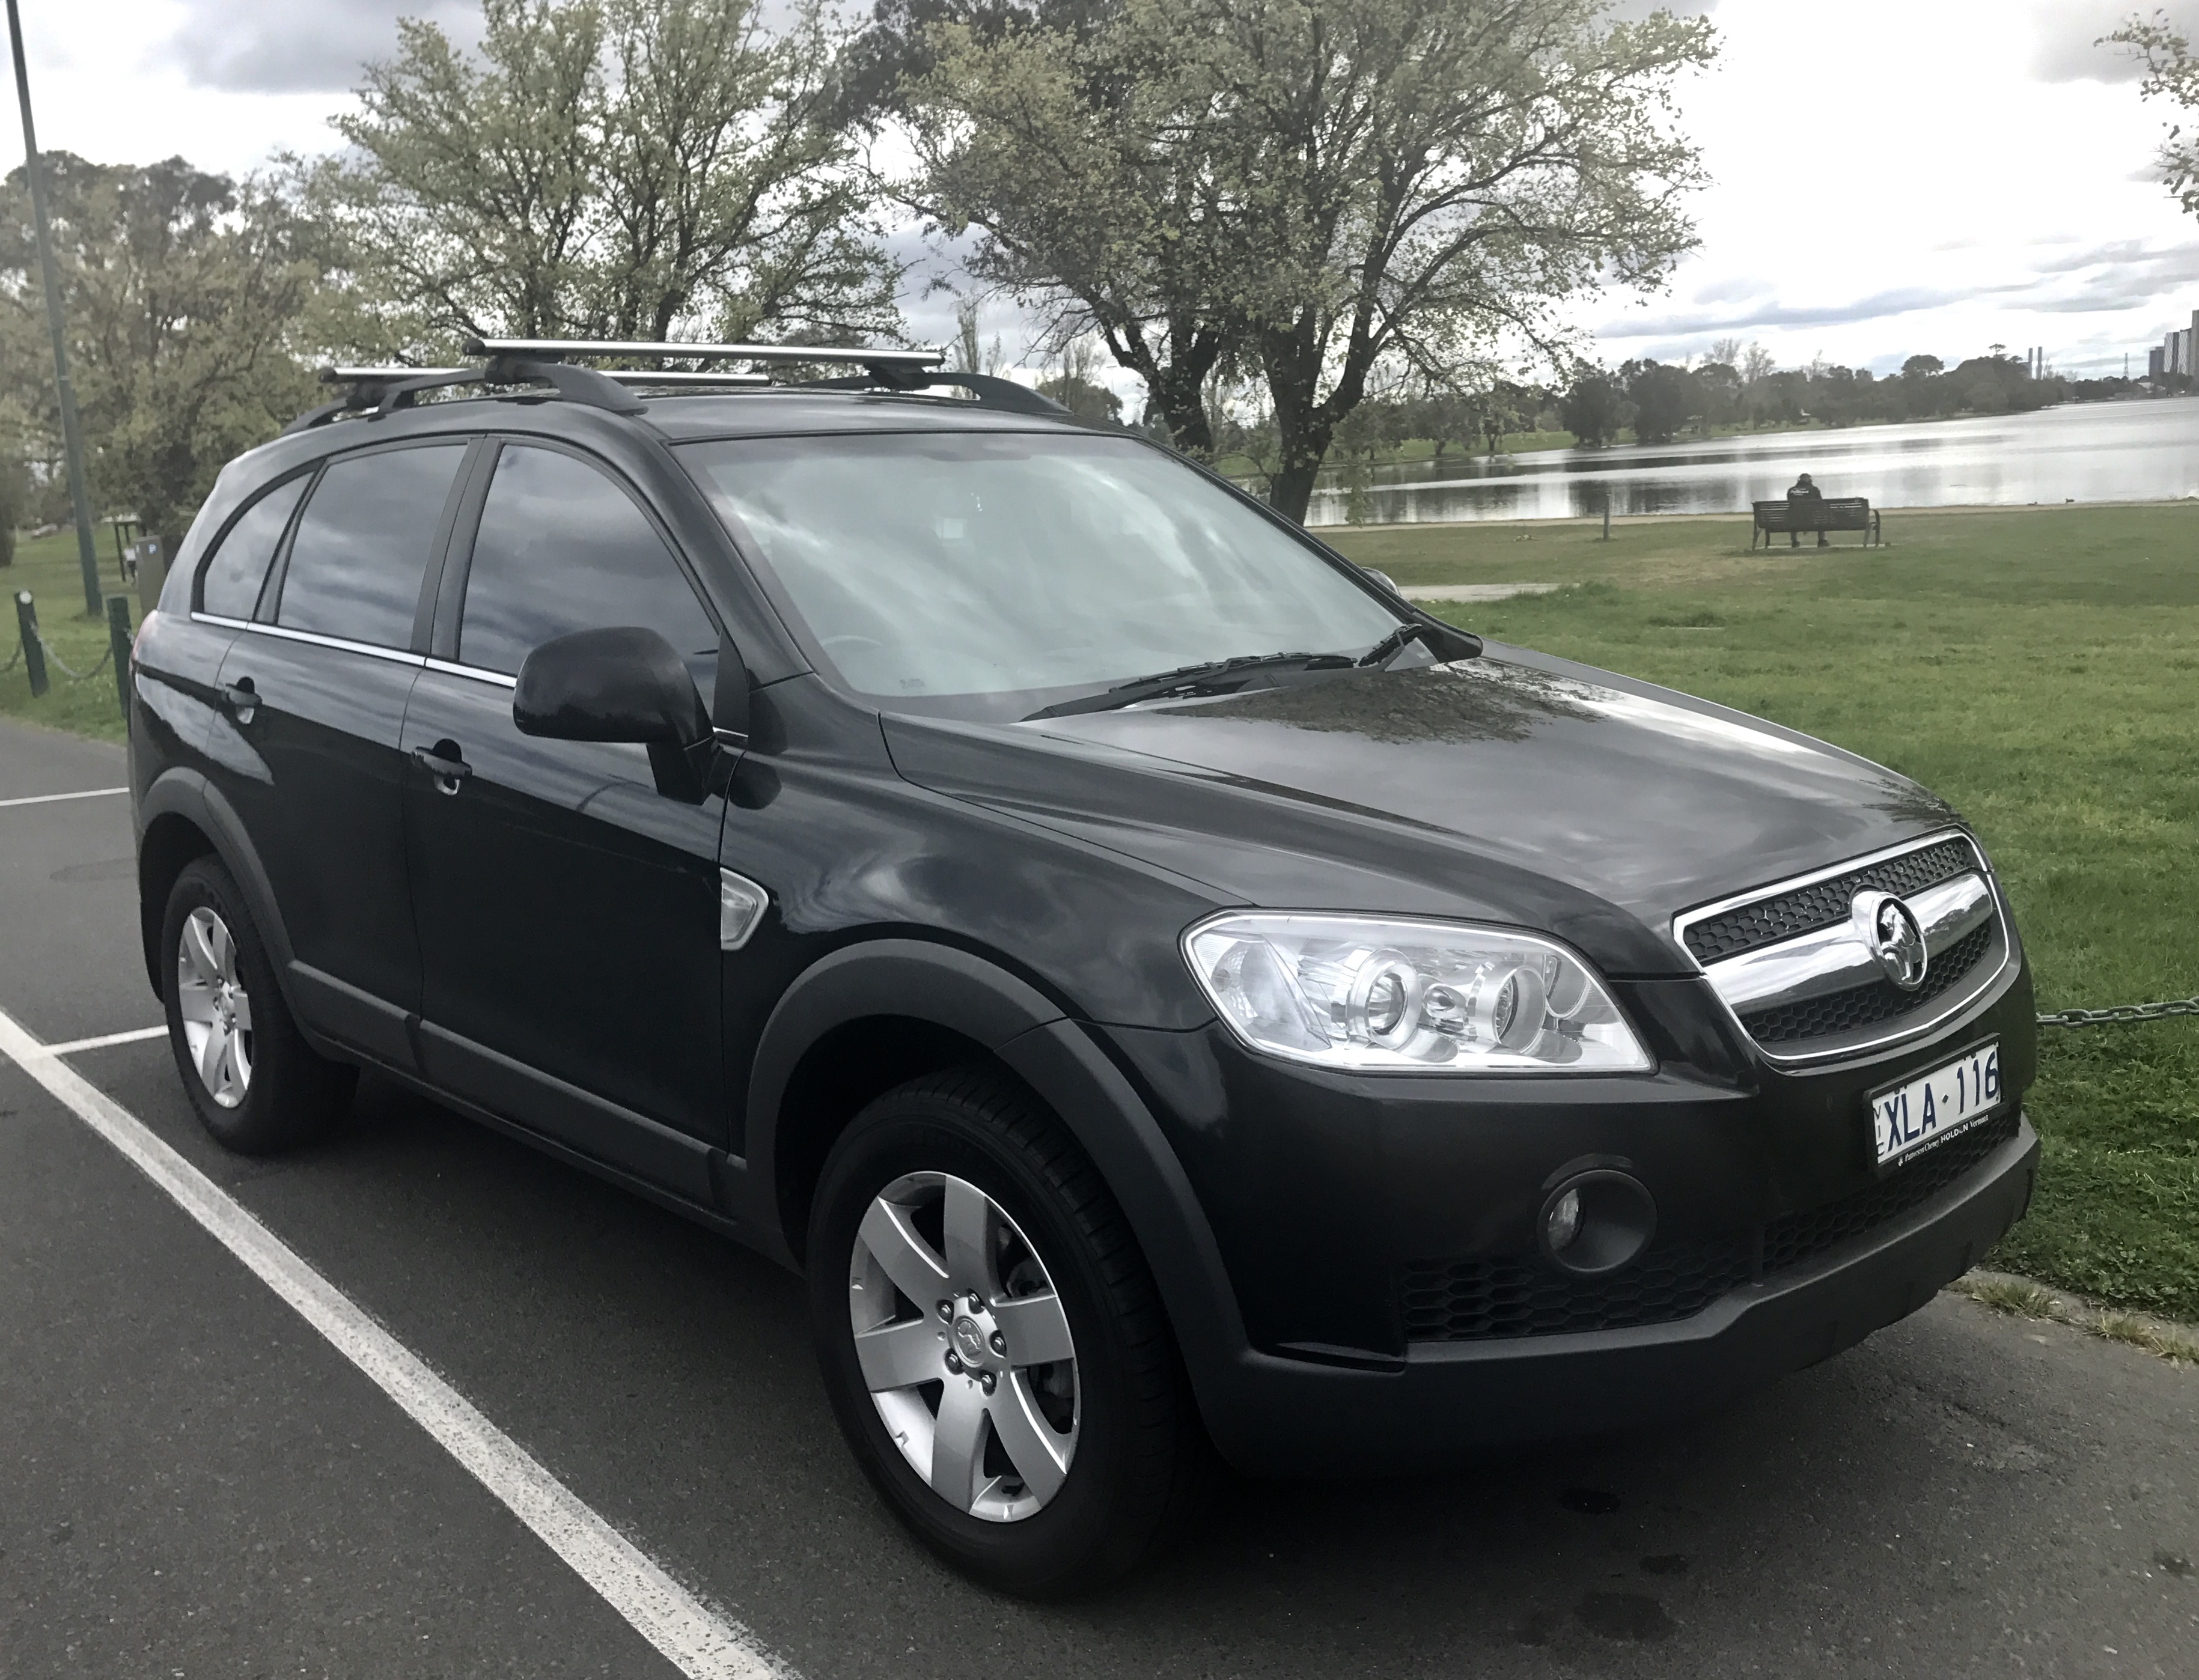 Picture of Shreejan's 2009 Holden Captiva (7 Seater)